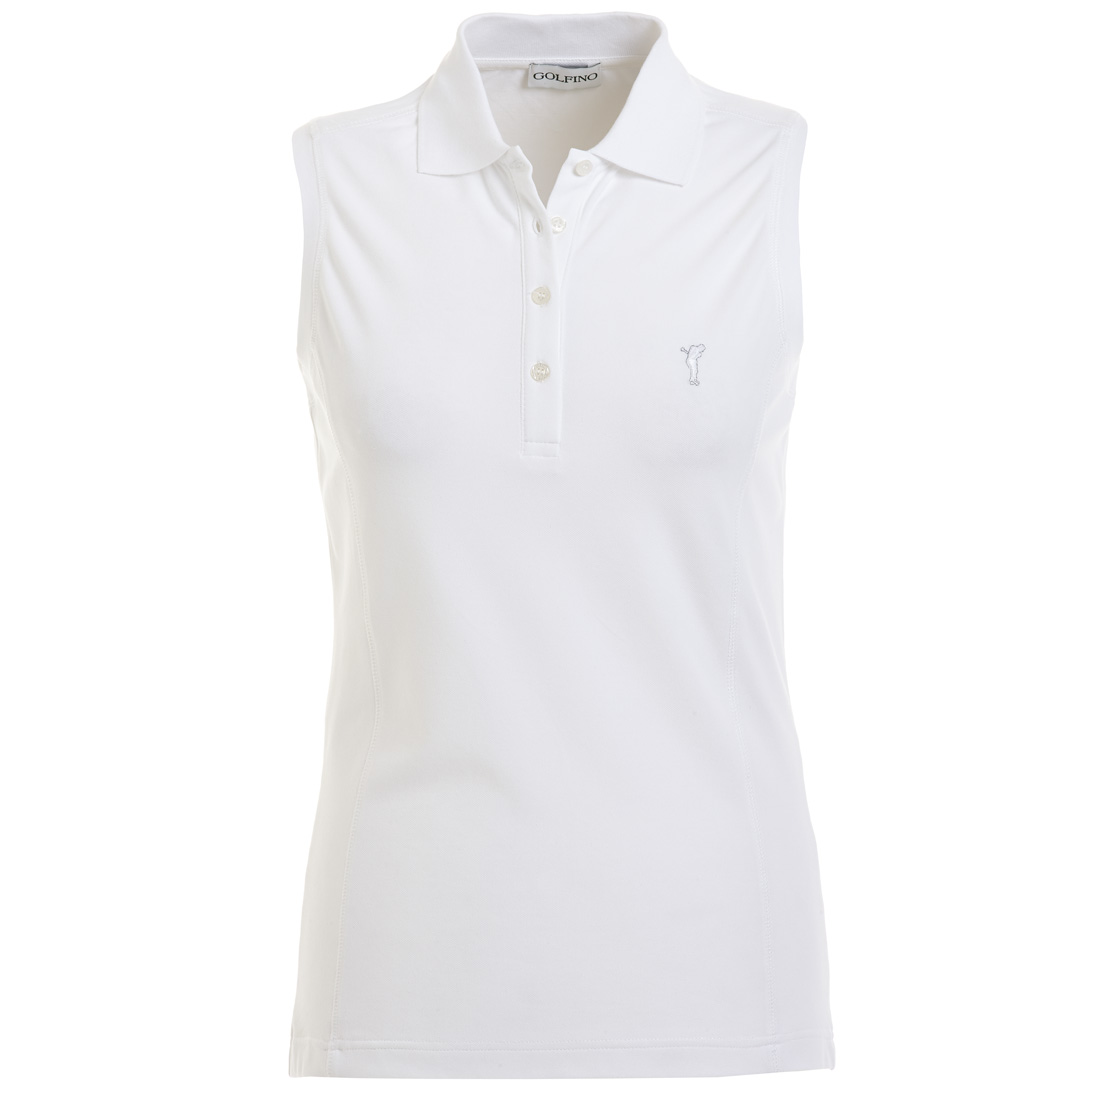 Ärmelloses Damen Golf Polohemd Sun Protection in Slim Fit